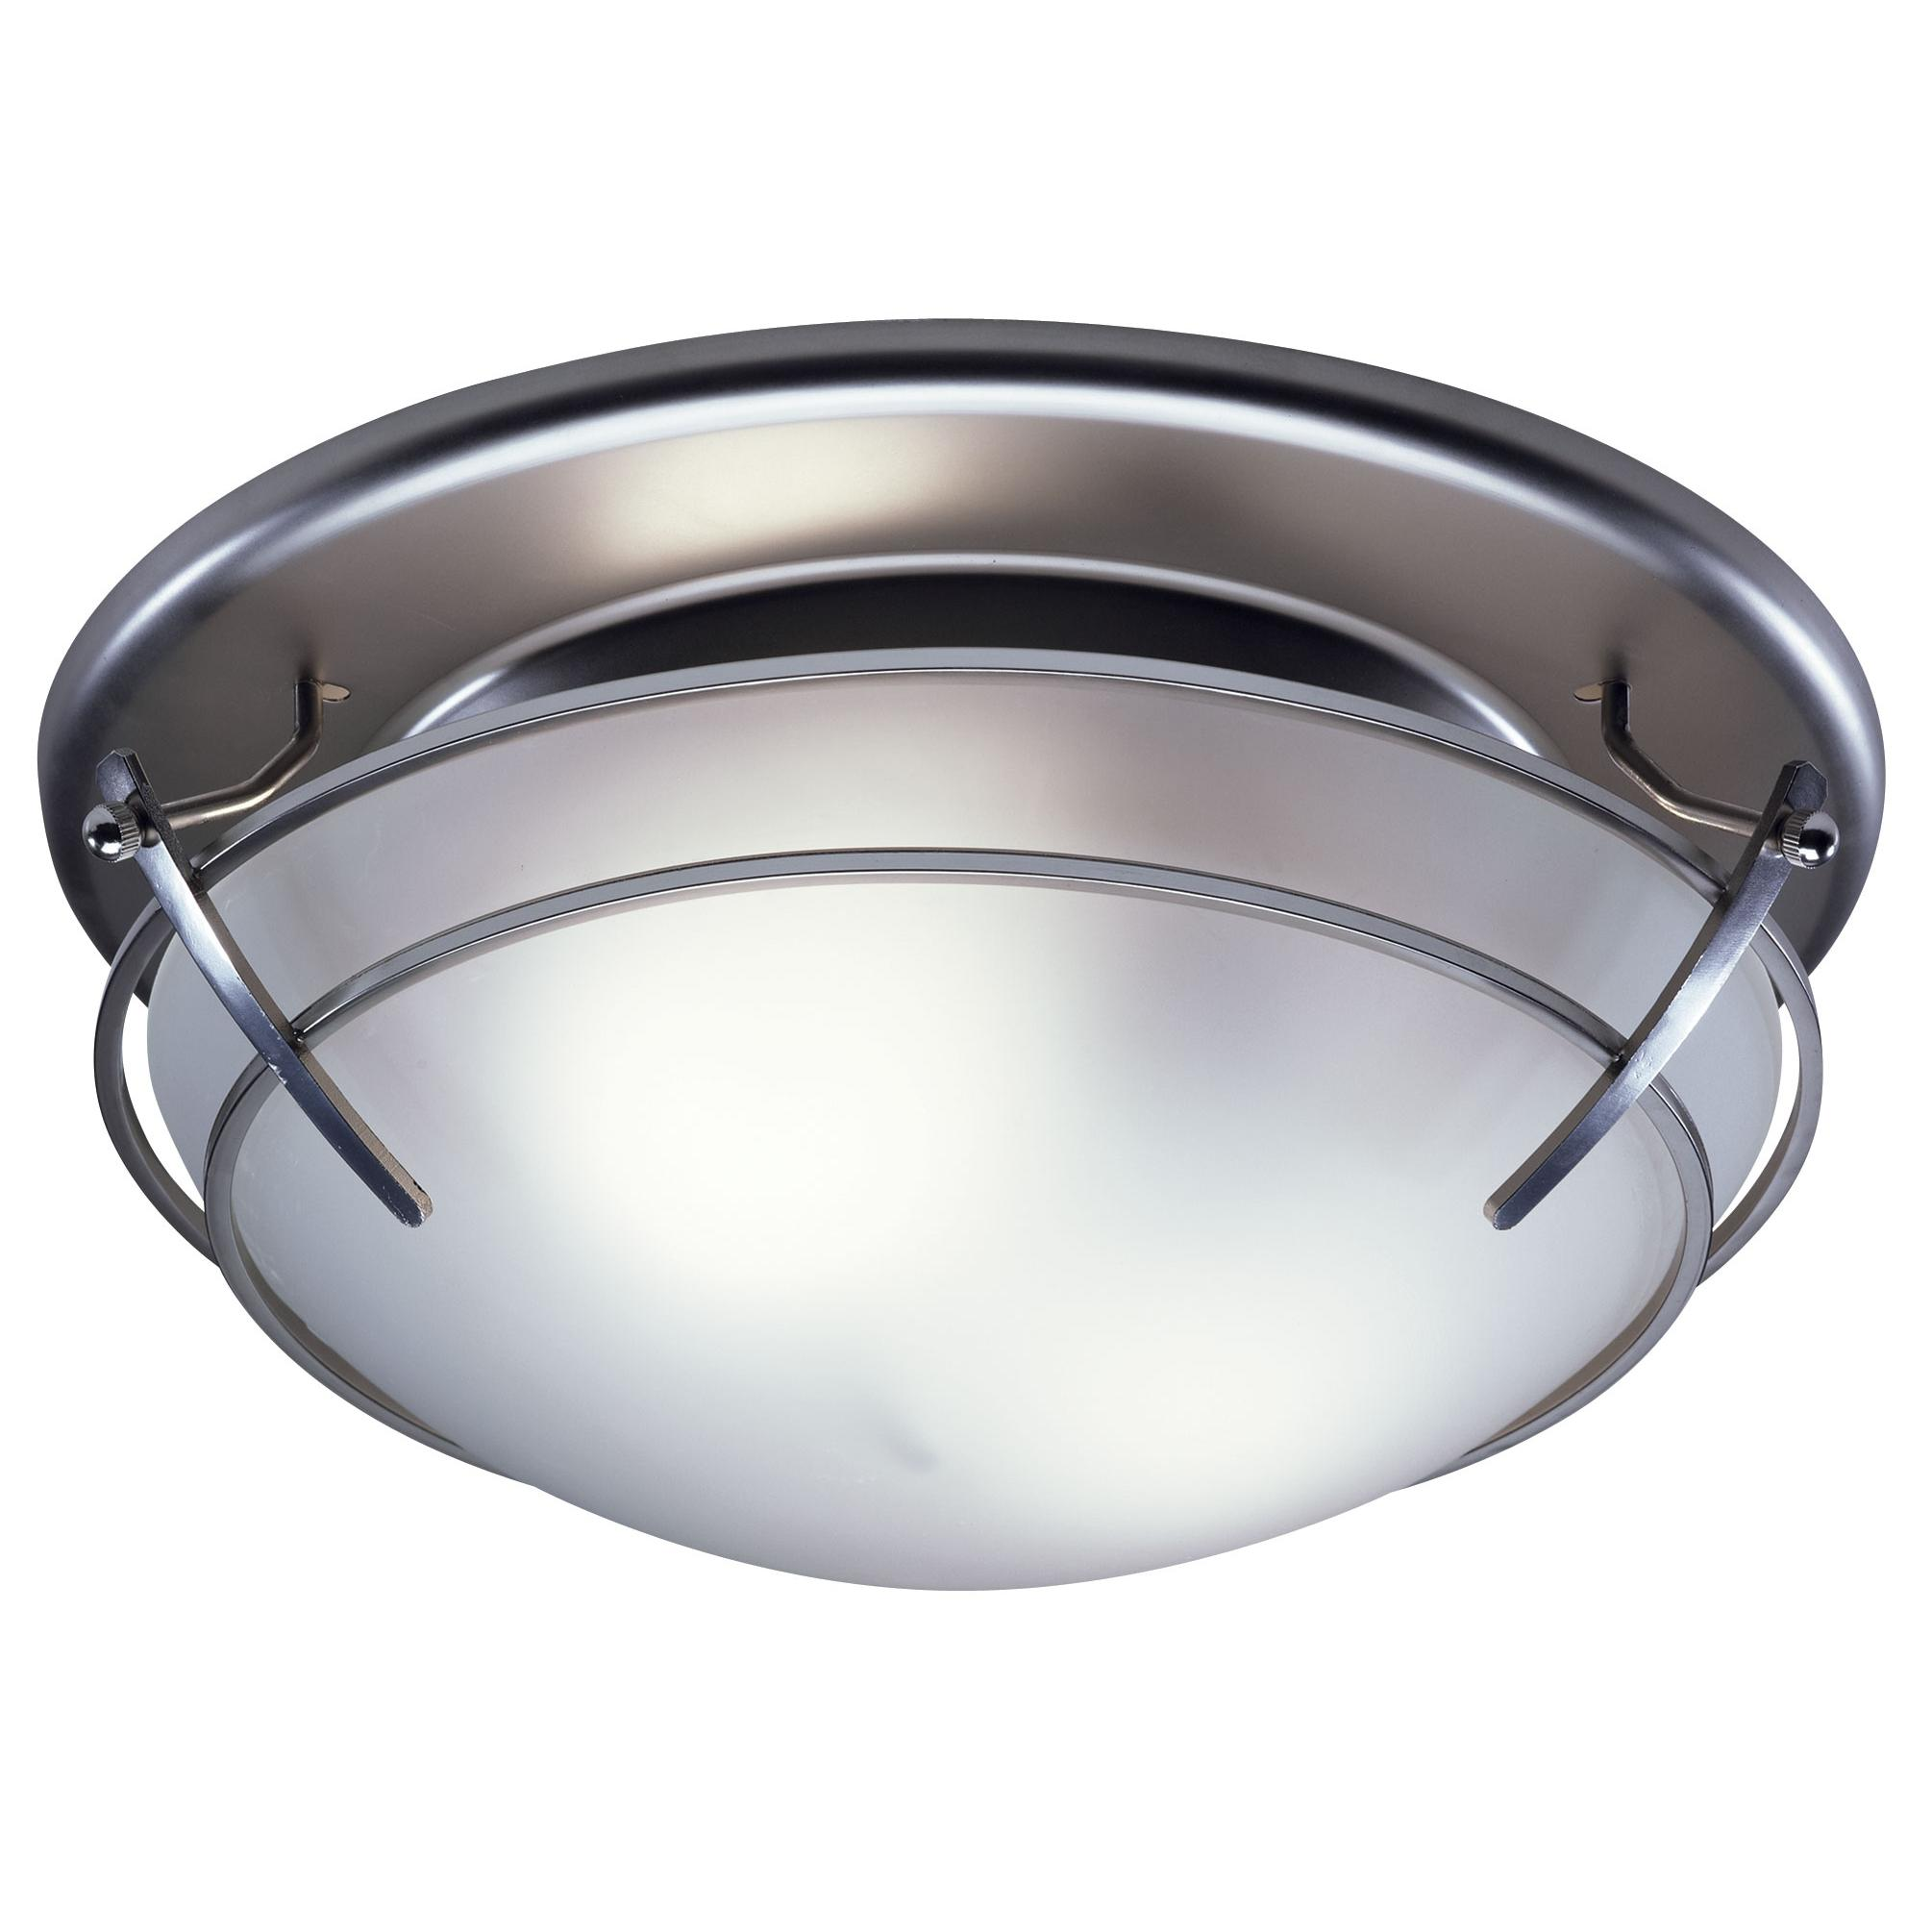 Broan SN Decorative Ventilation Fan And Light CFM Sones - Kitchen light and fan